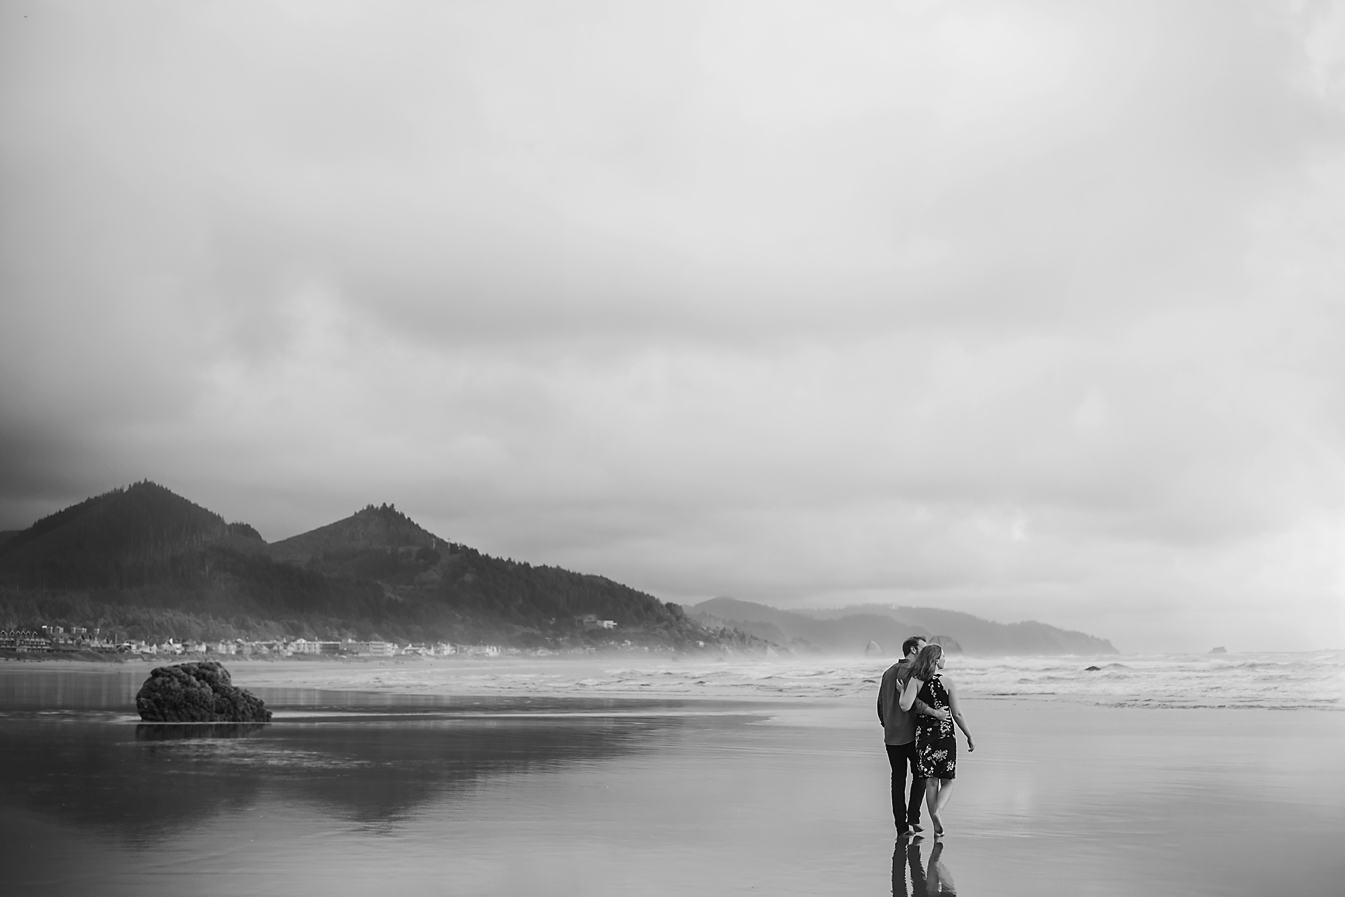 Amanda + Matt - Oregon Coast Engagement Photographer - Destination Elopement Photographer - Emily & Co. Photography (1).jpg